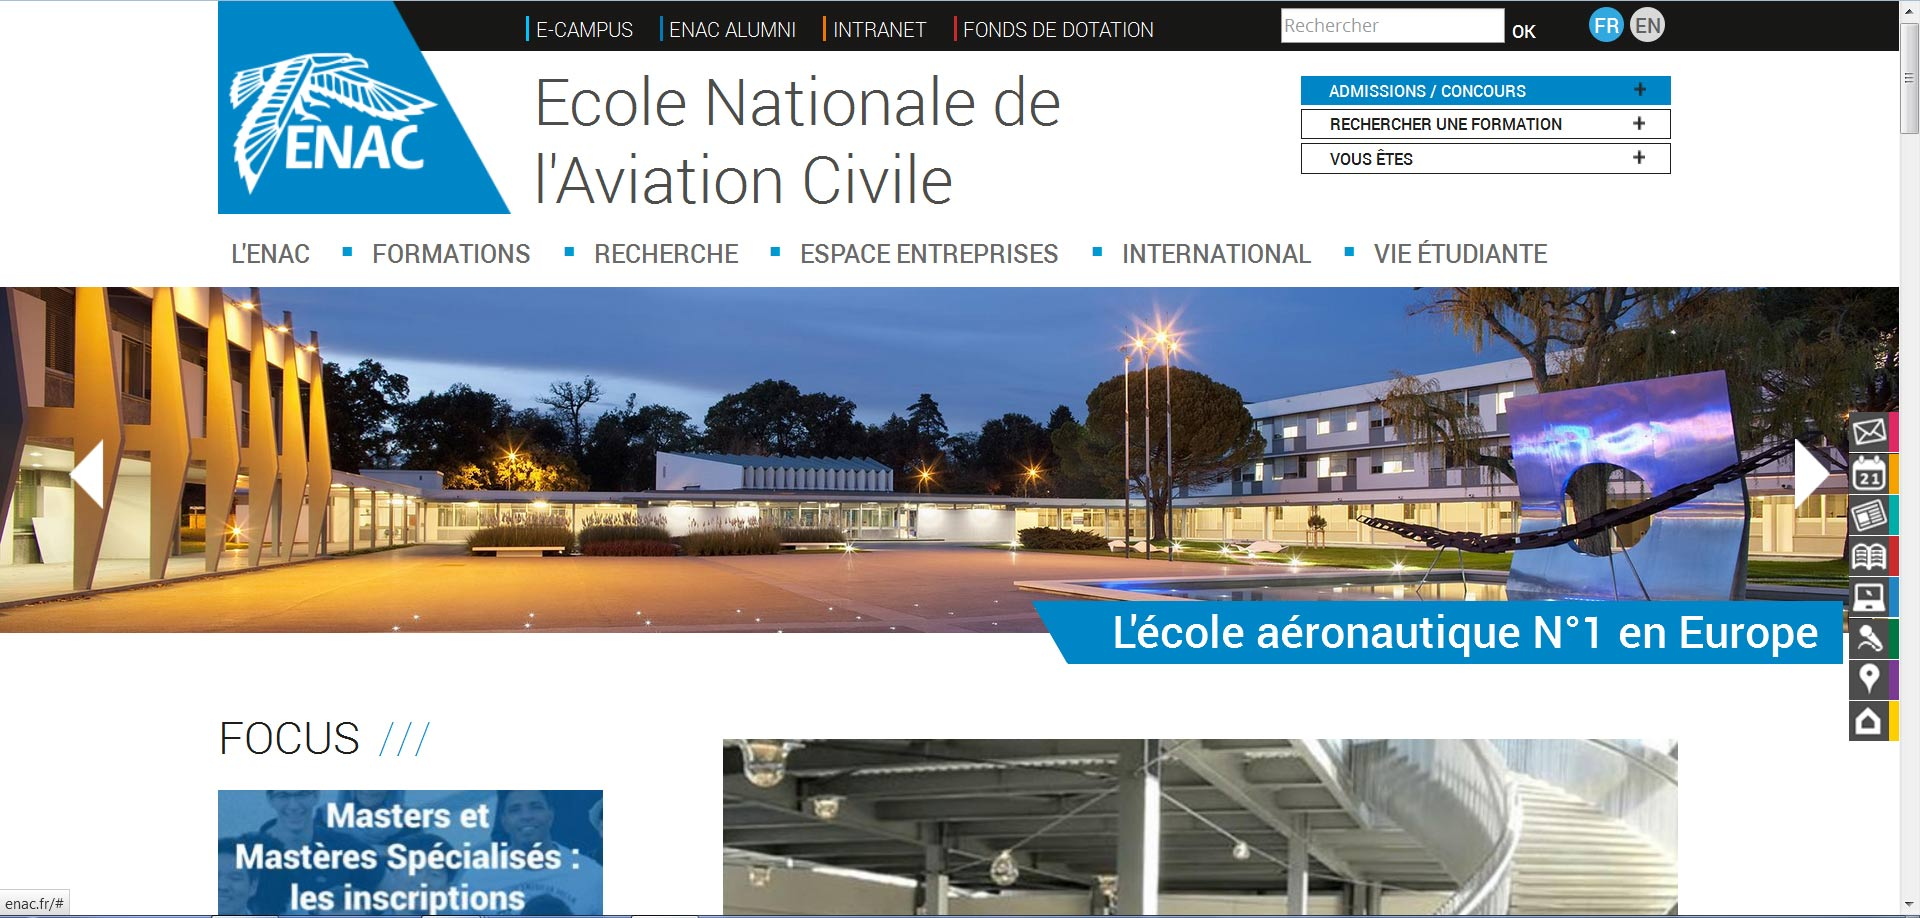 L'école nationale de l'aviation civile